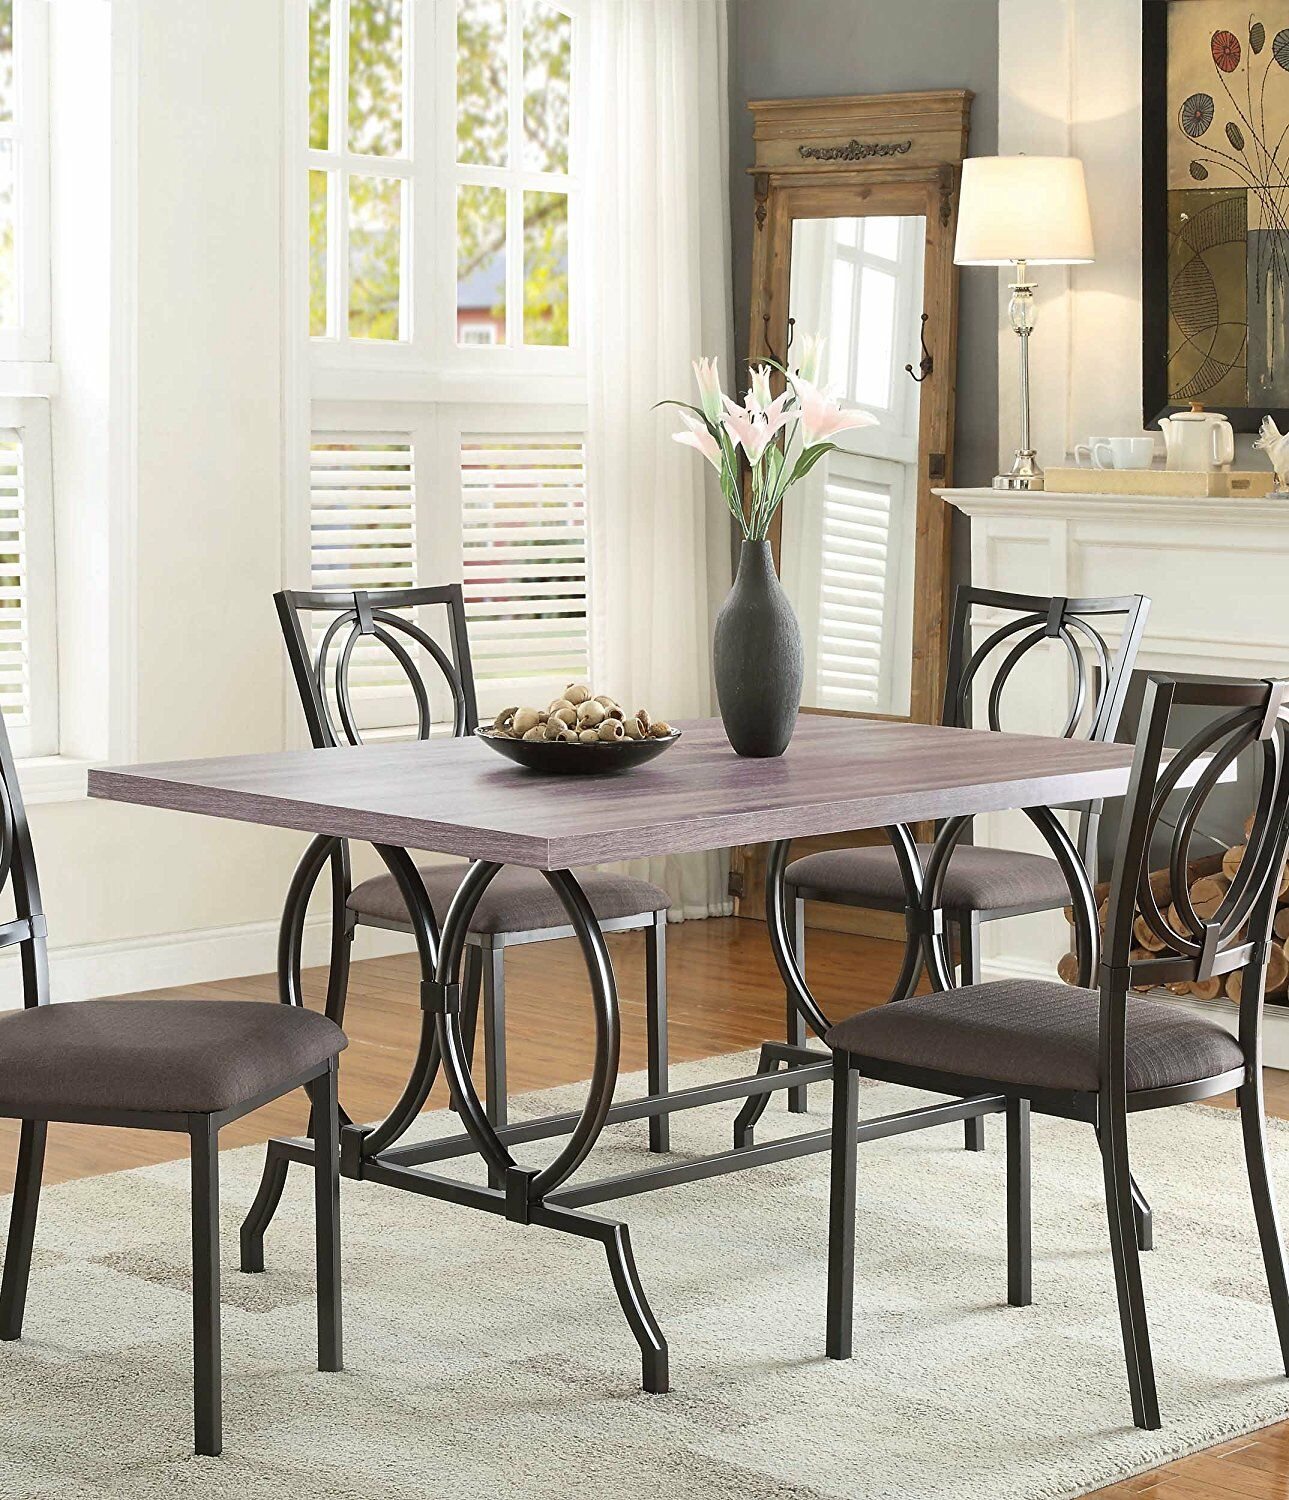 Alaric Wooden Dining Table